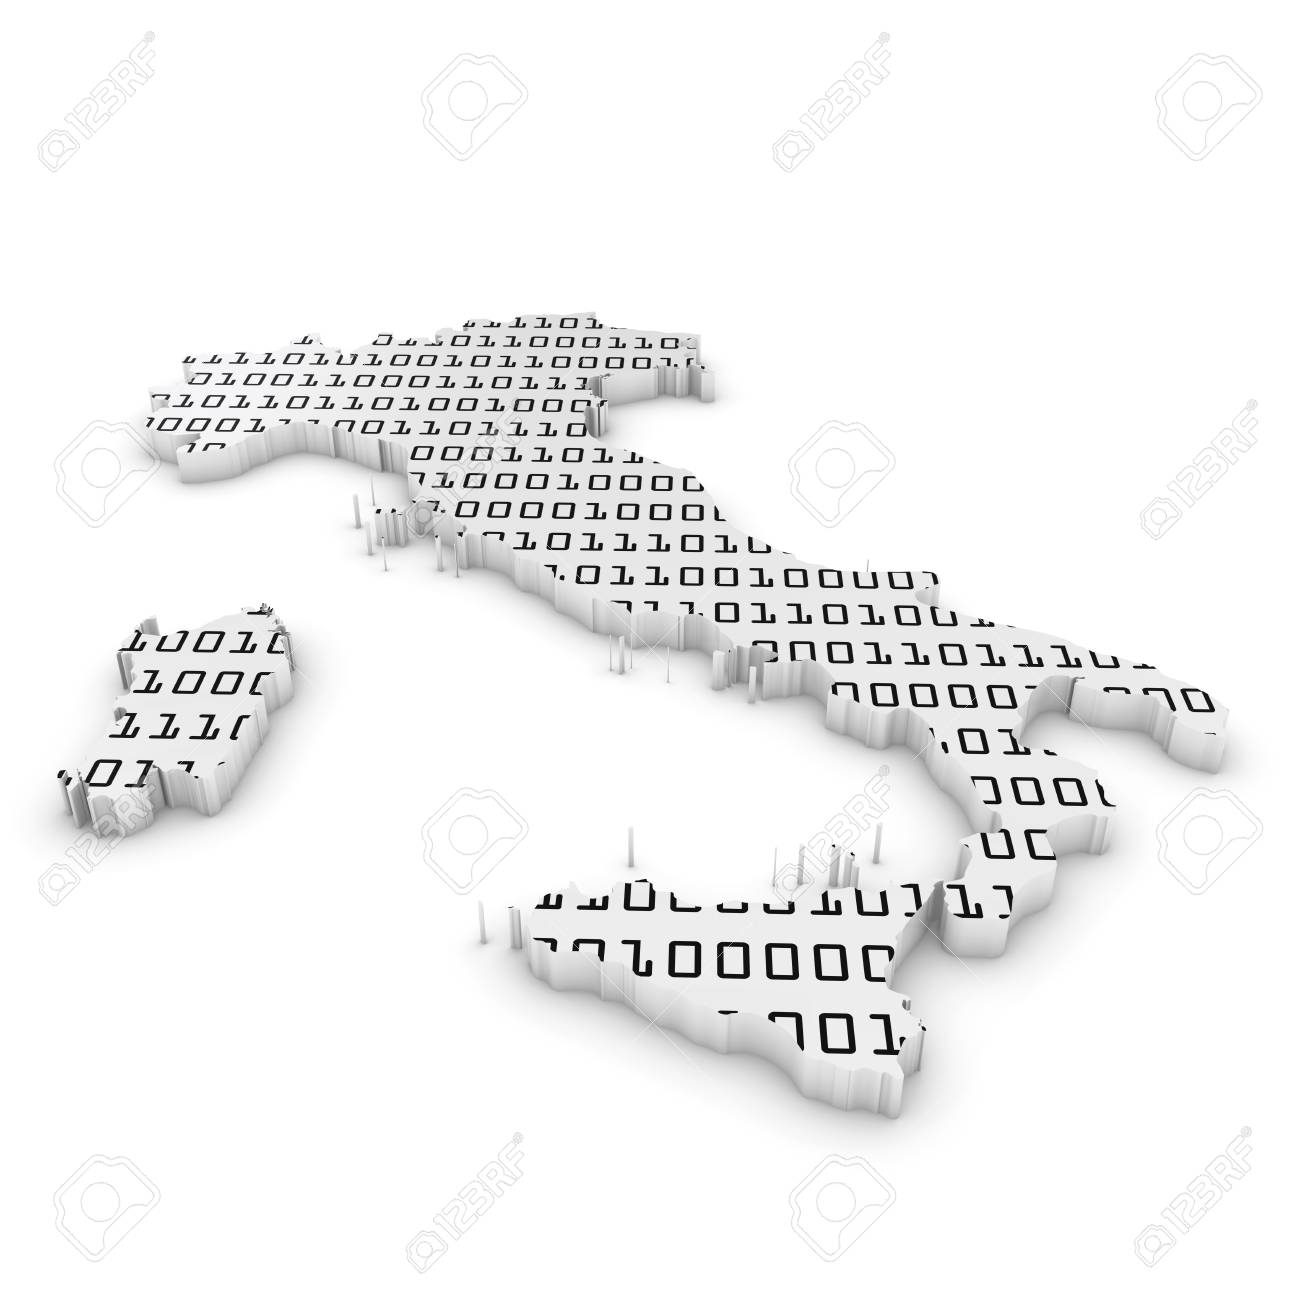 Map Of Italy Outline.3d Illustration Map Outline Of Italy With Black And White Binary